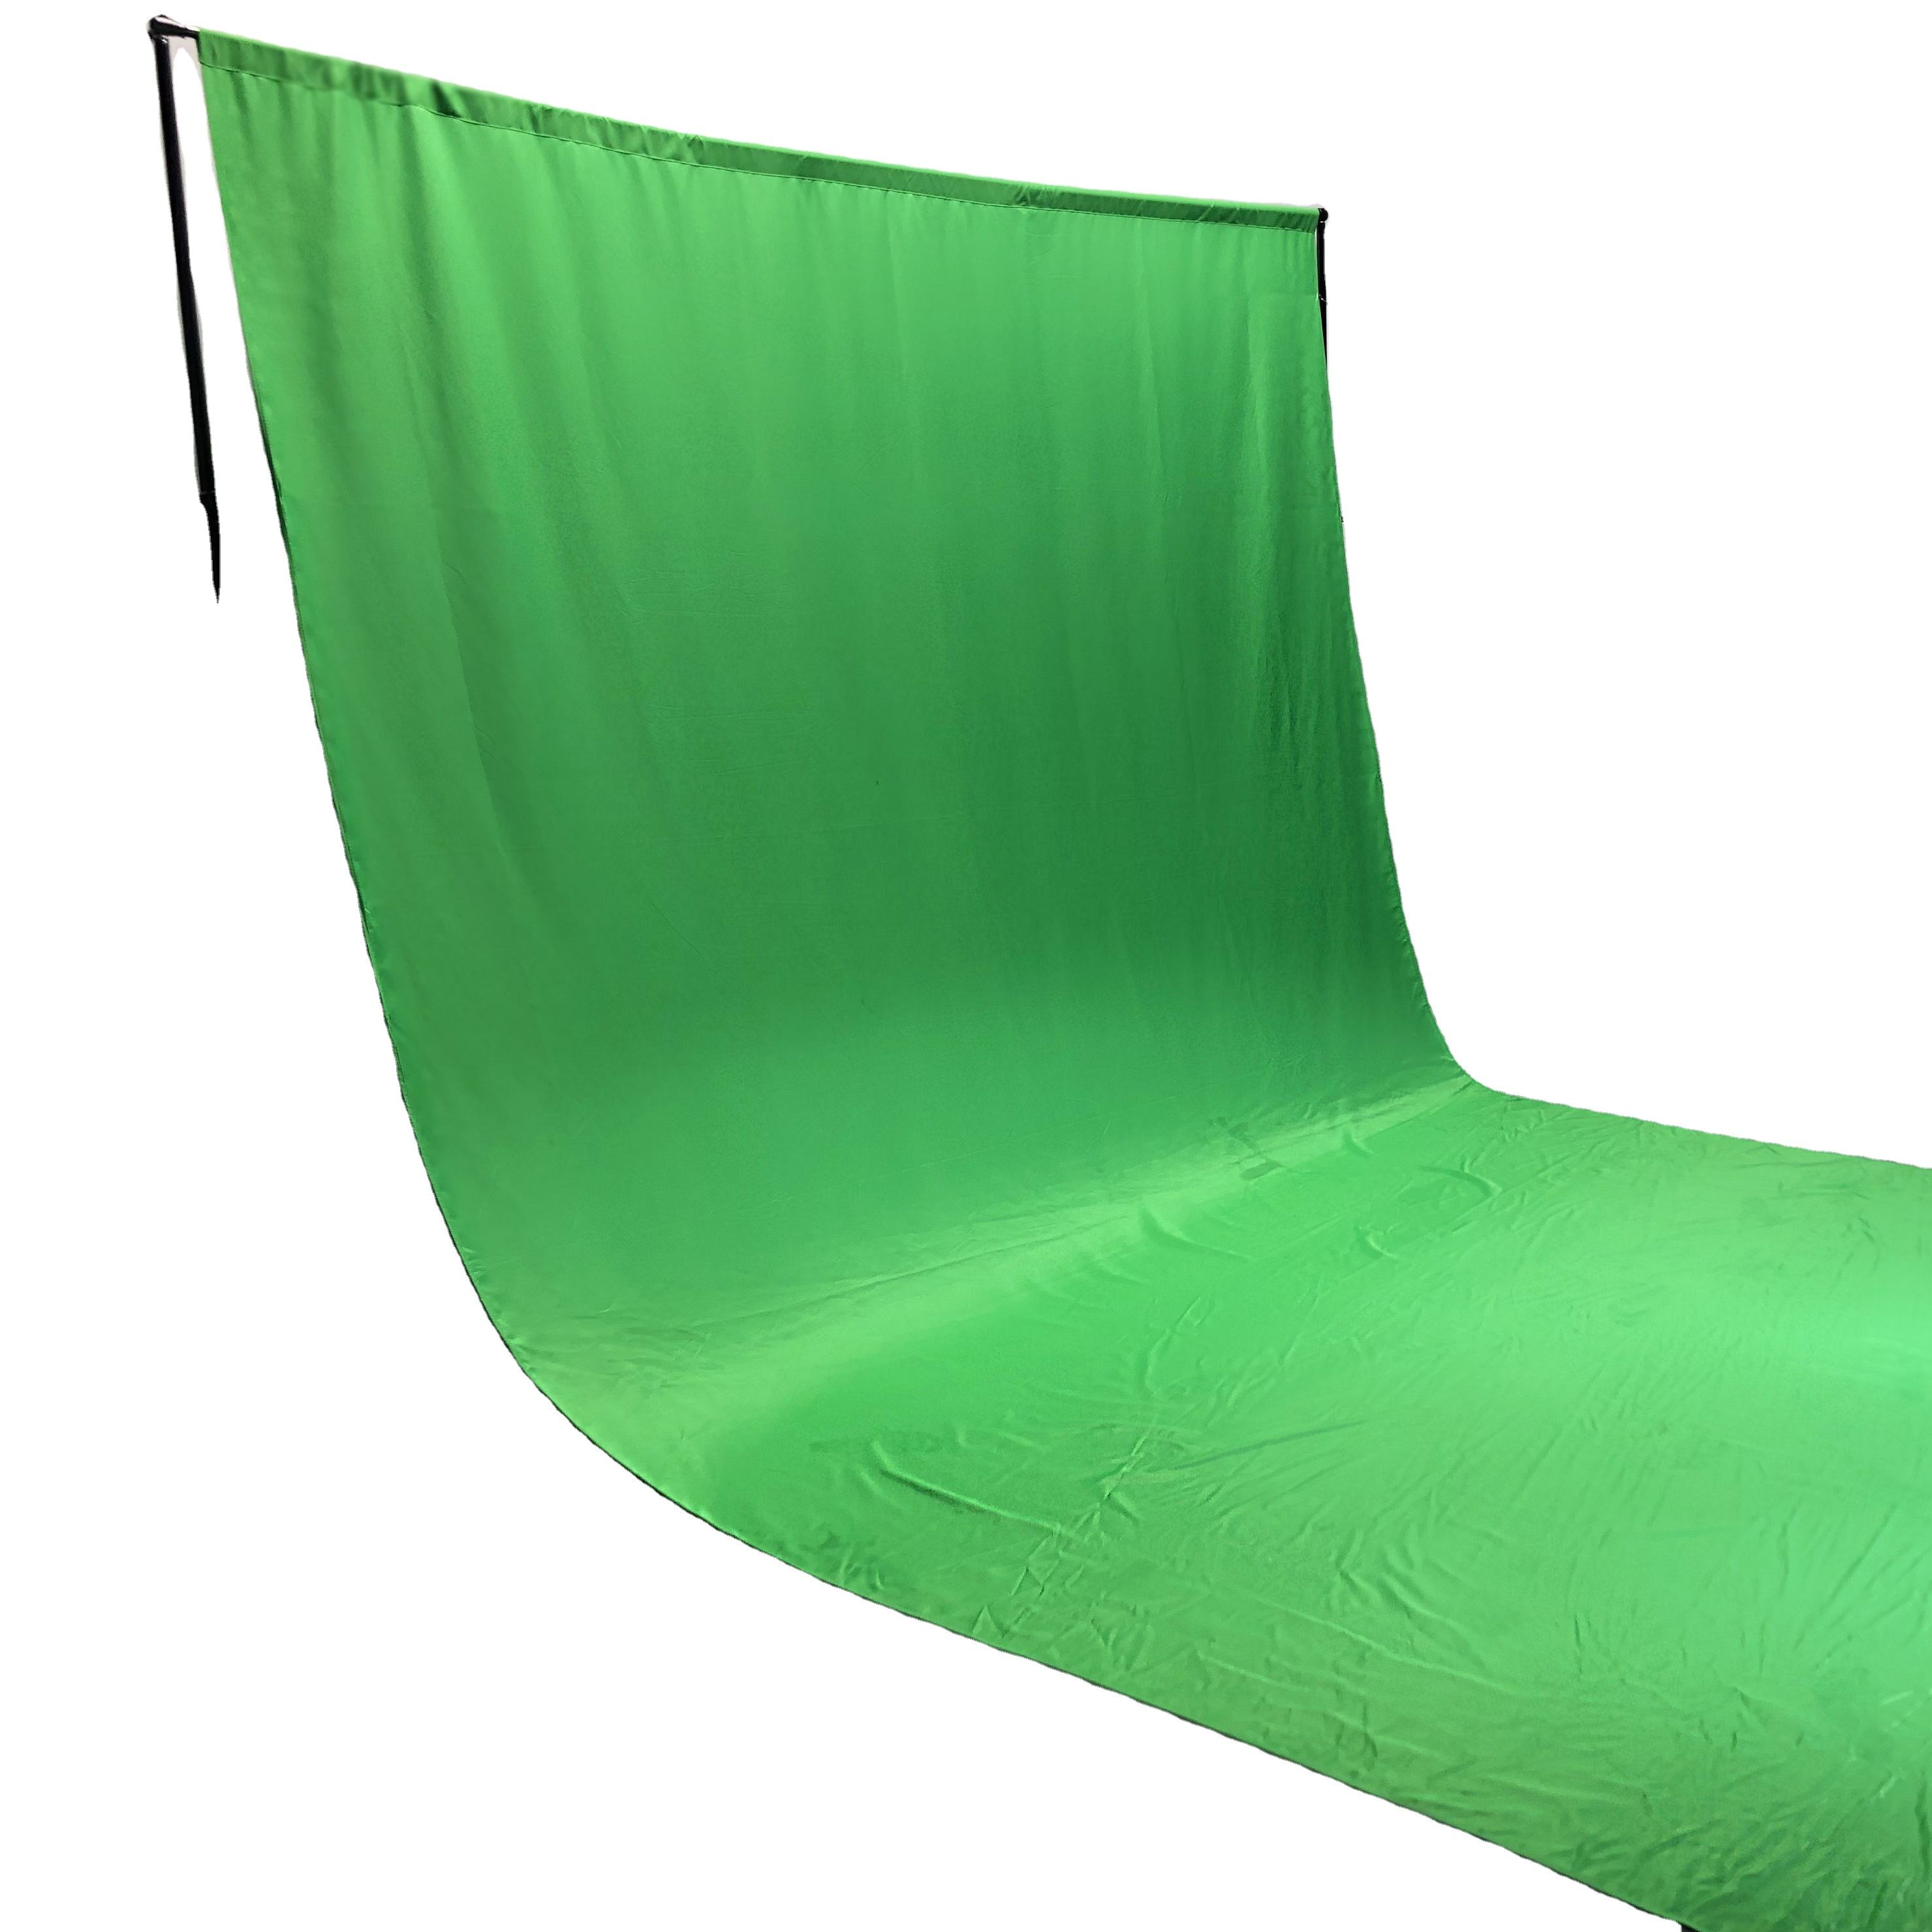 photographic equipment studio photography kit accessories green screen backdrop stand background support